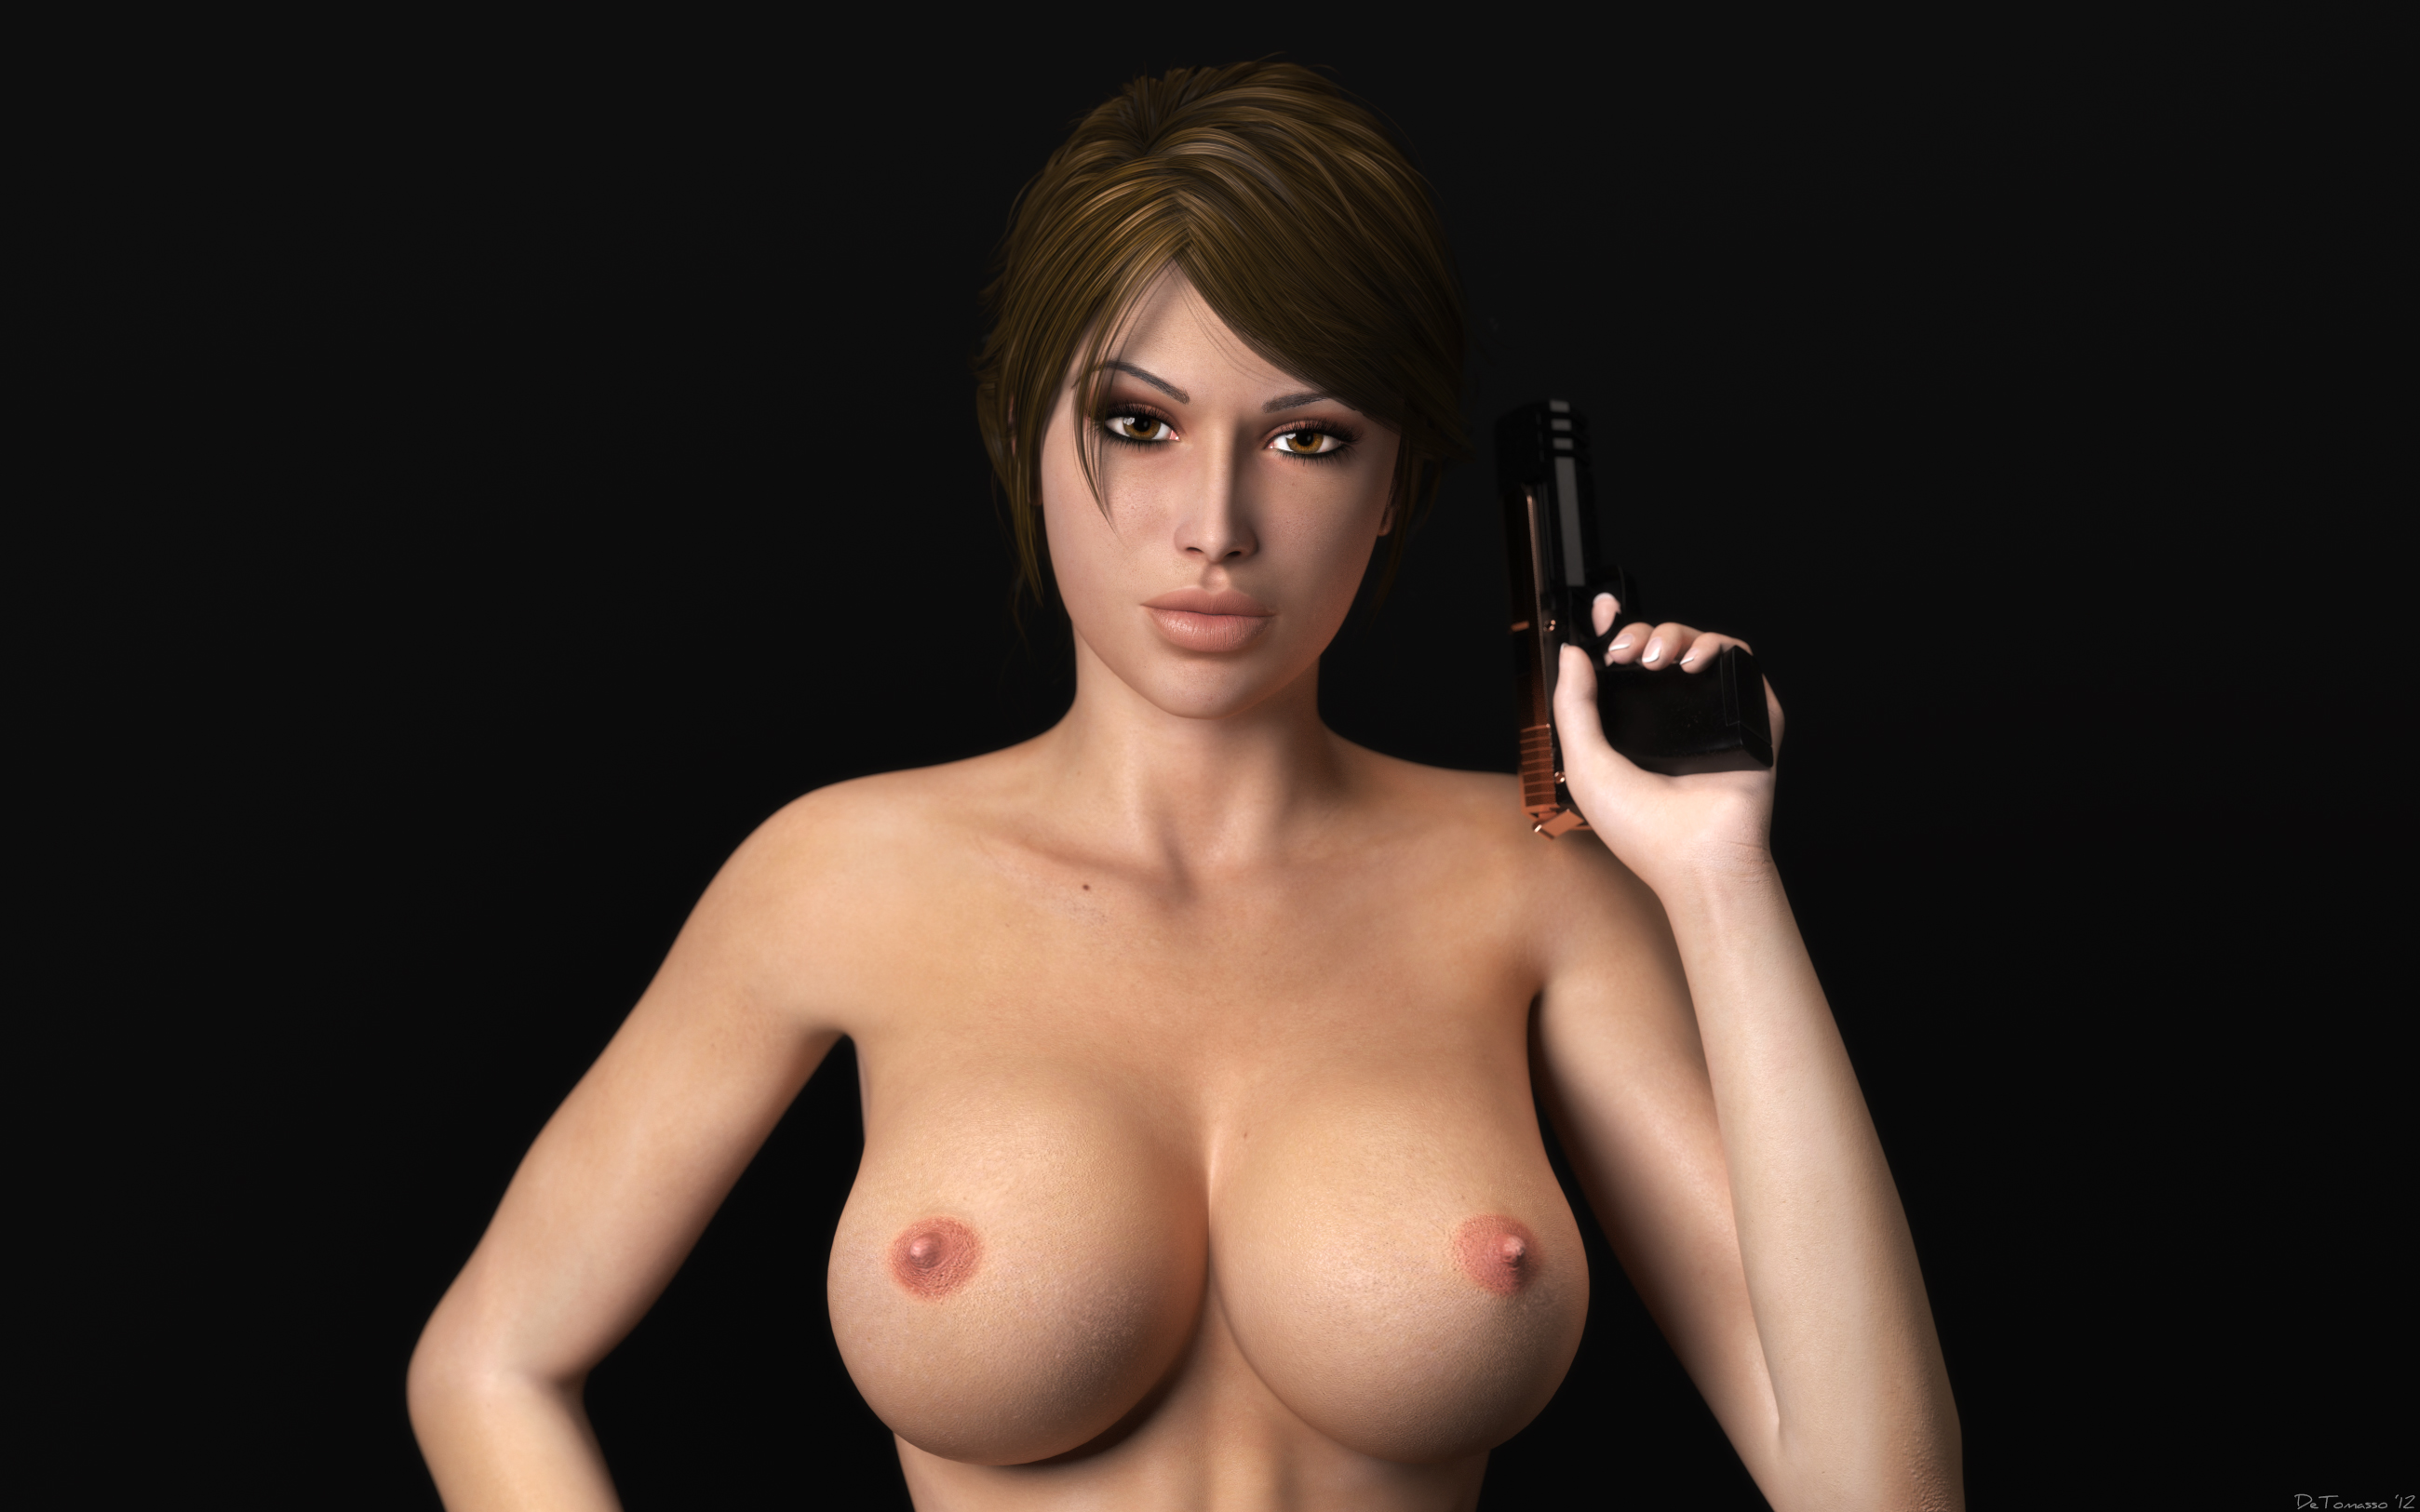 Lara croft nude figure xxx pictures